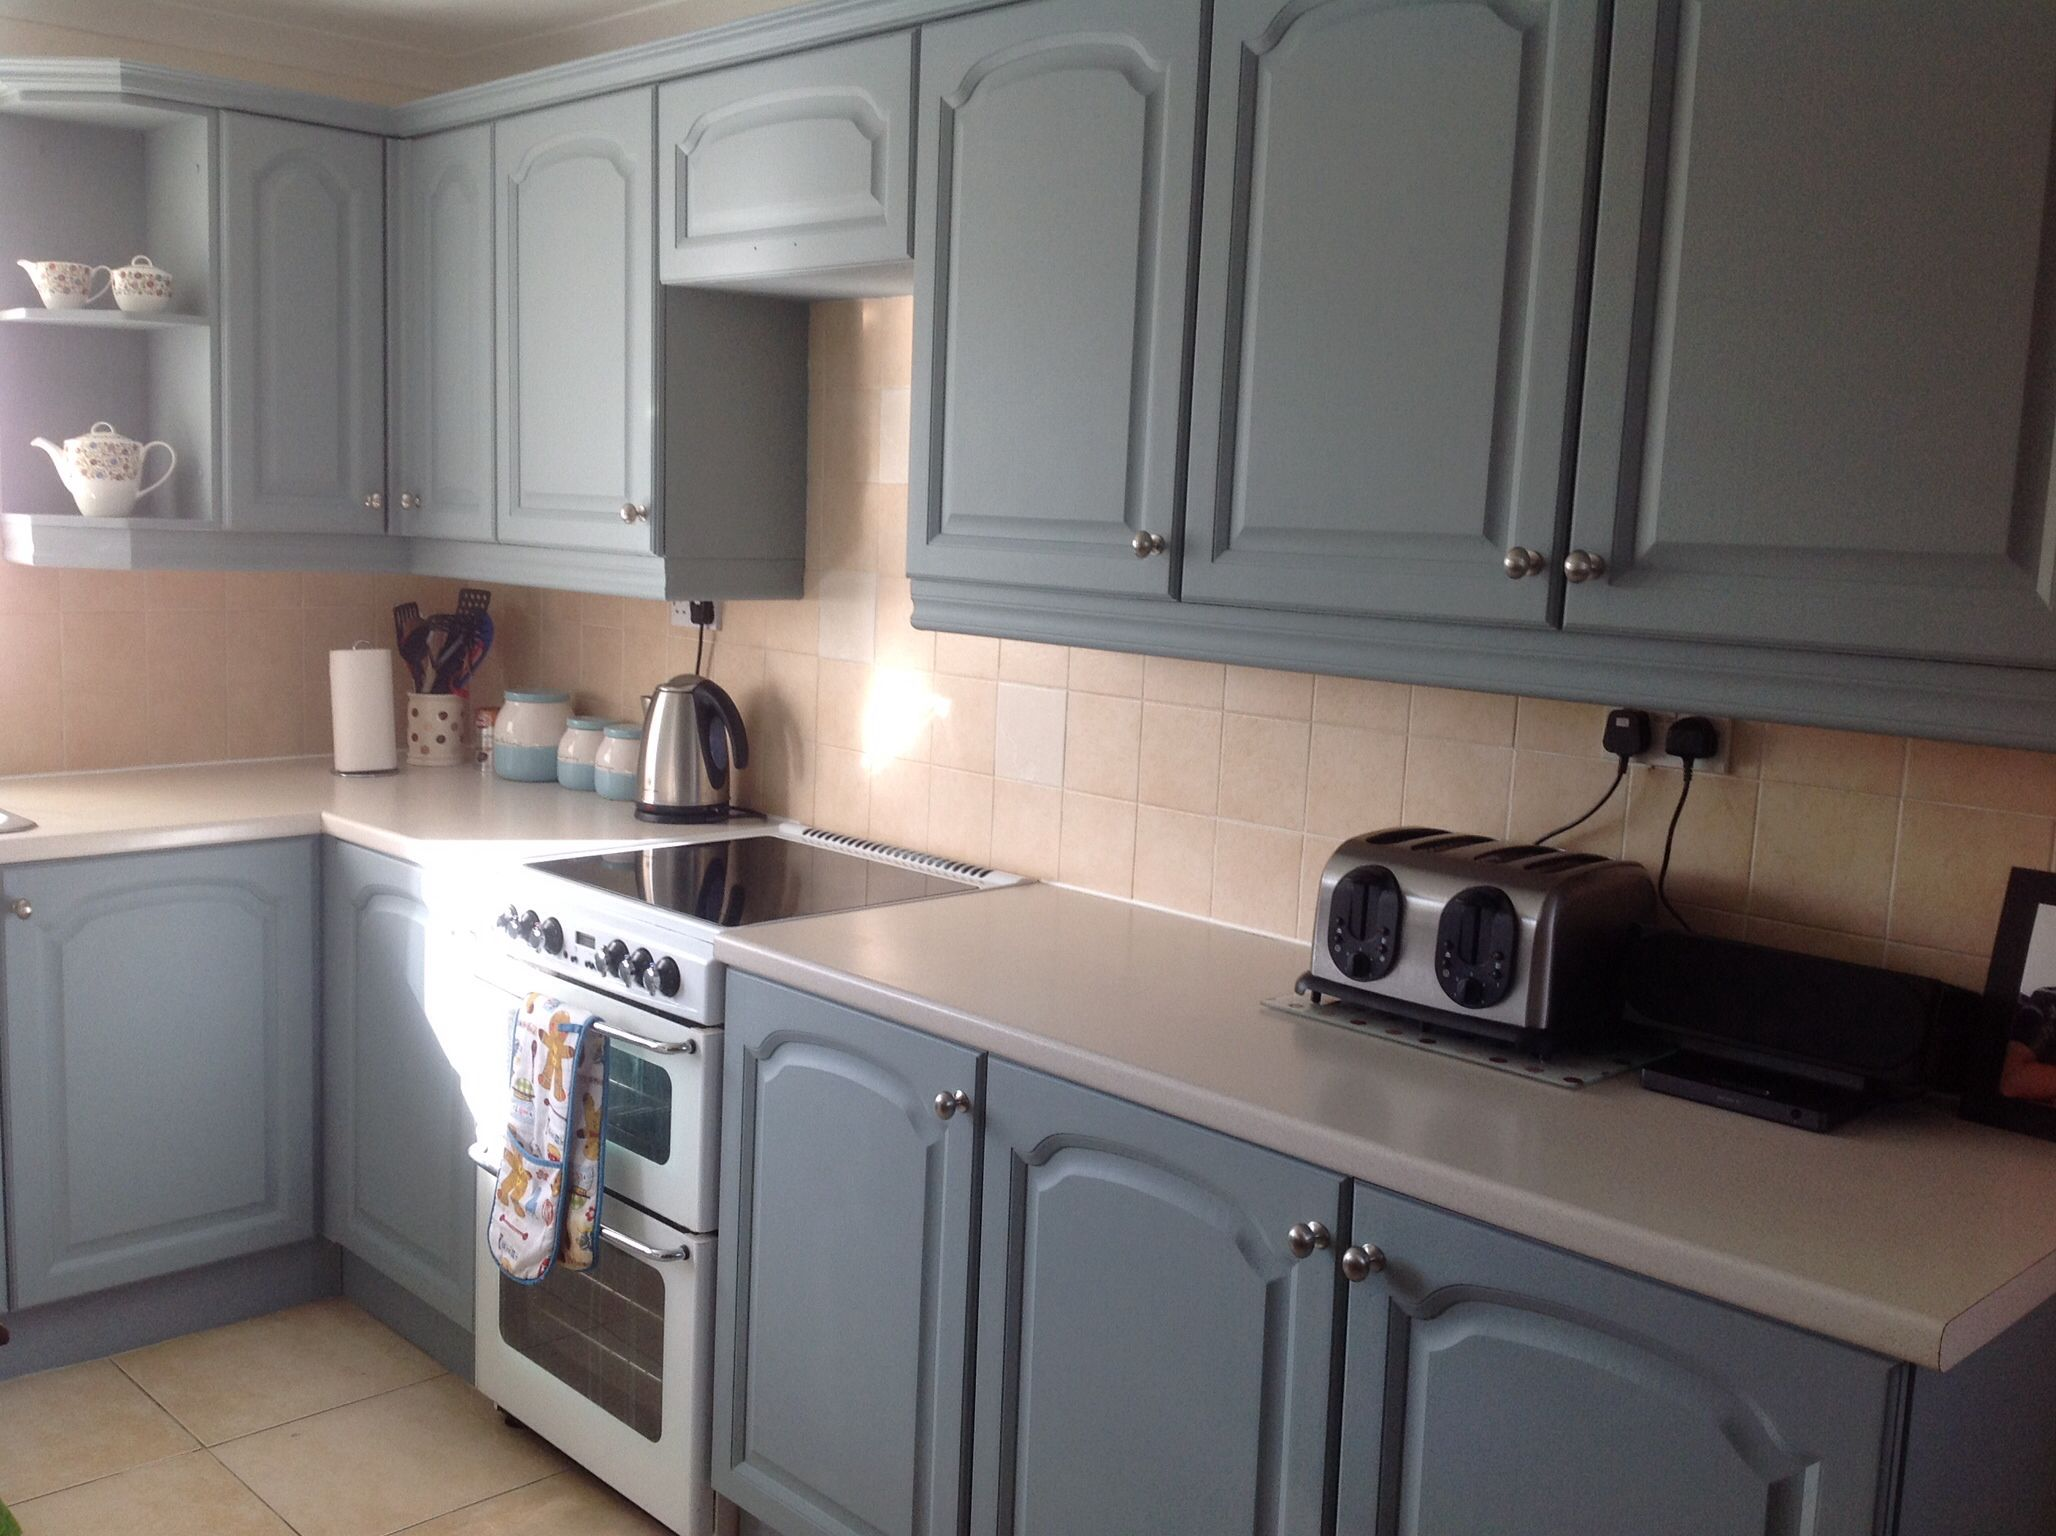 #Paintedkitchen Cupboards With #Autentico Paint In Scandinavian Blue